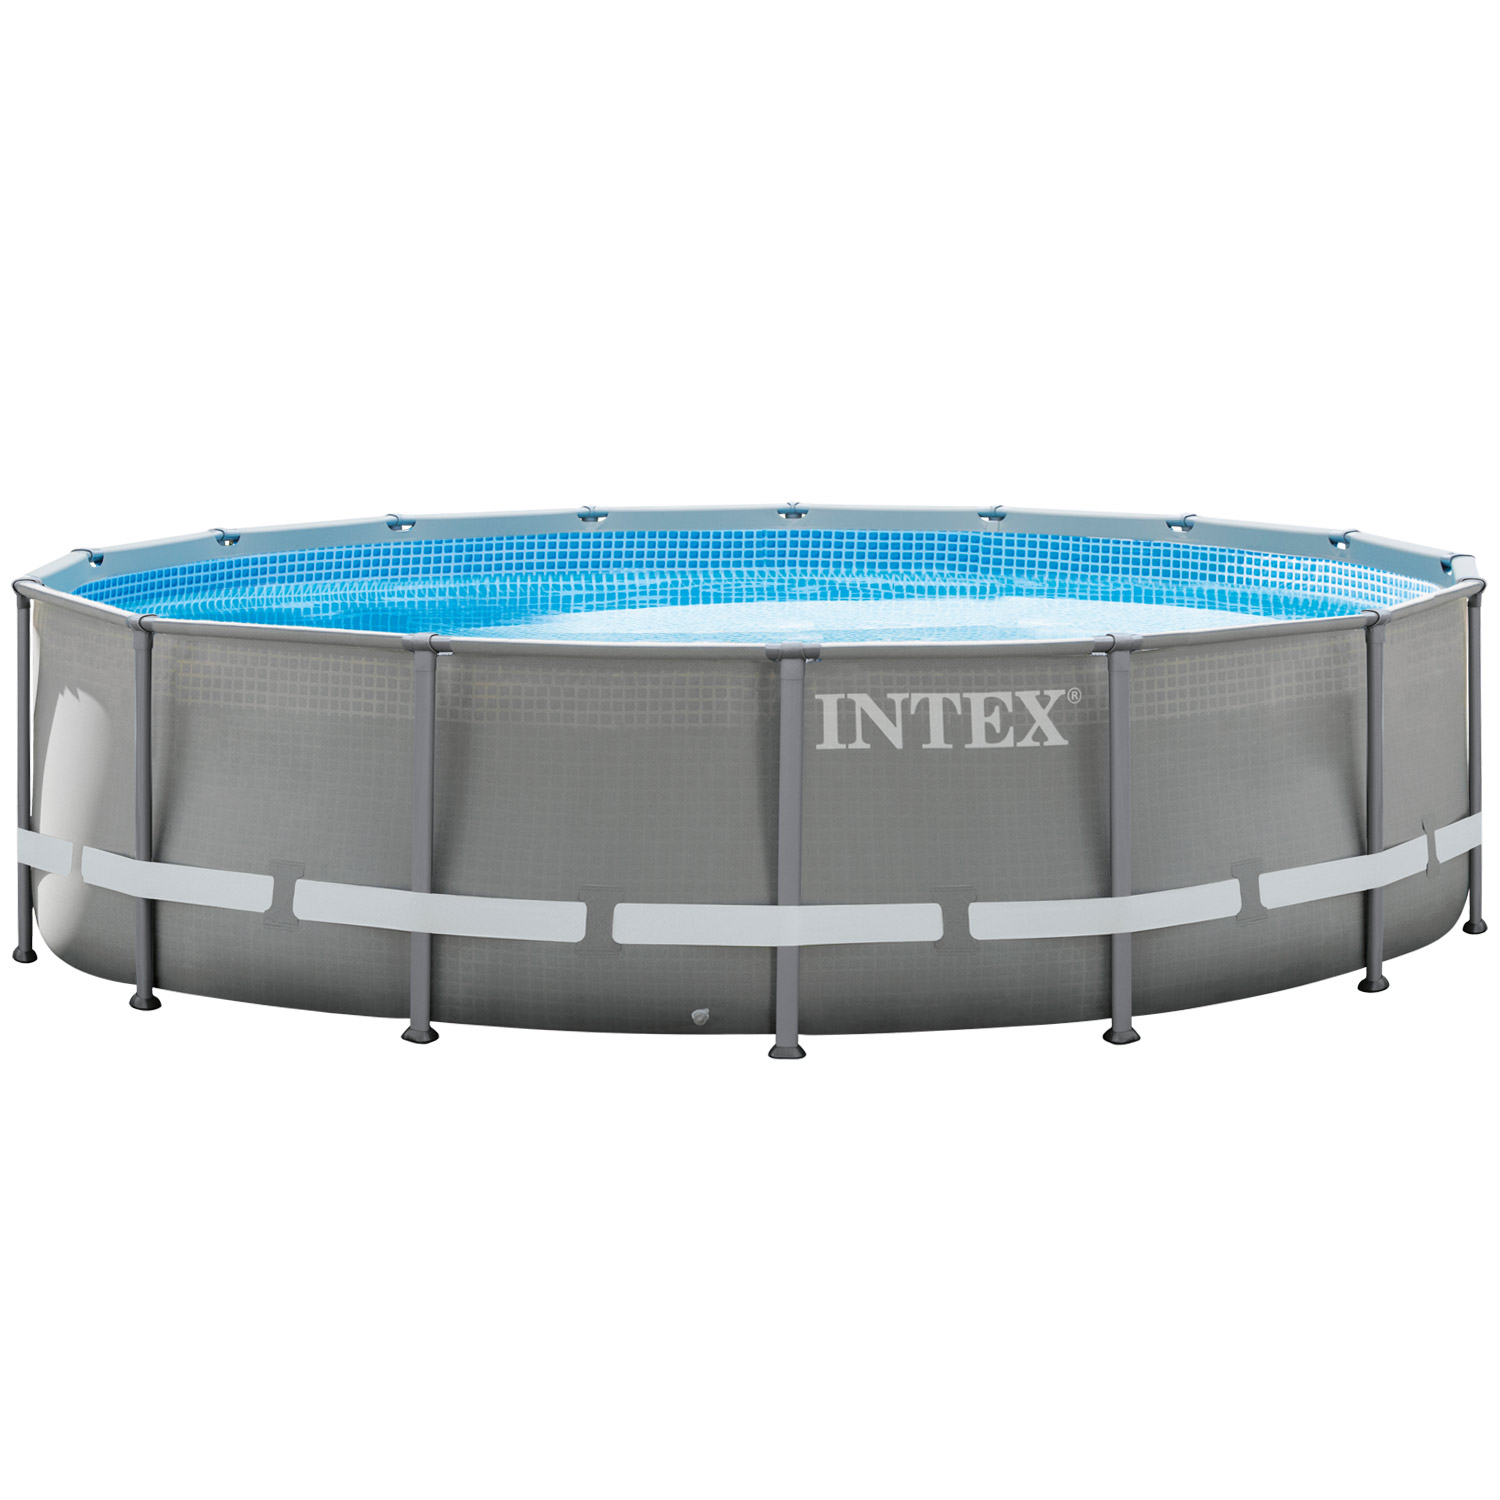 Intex 488x122 swimming pool steel wall metal frame new - Steel frame pool ...